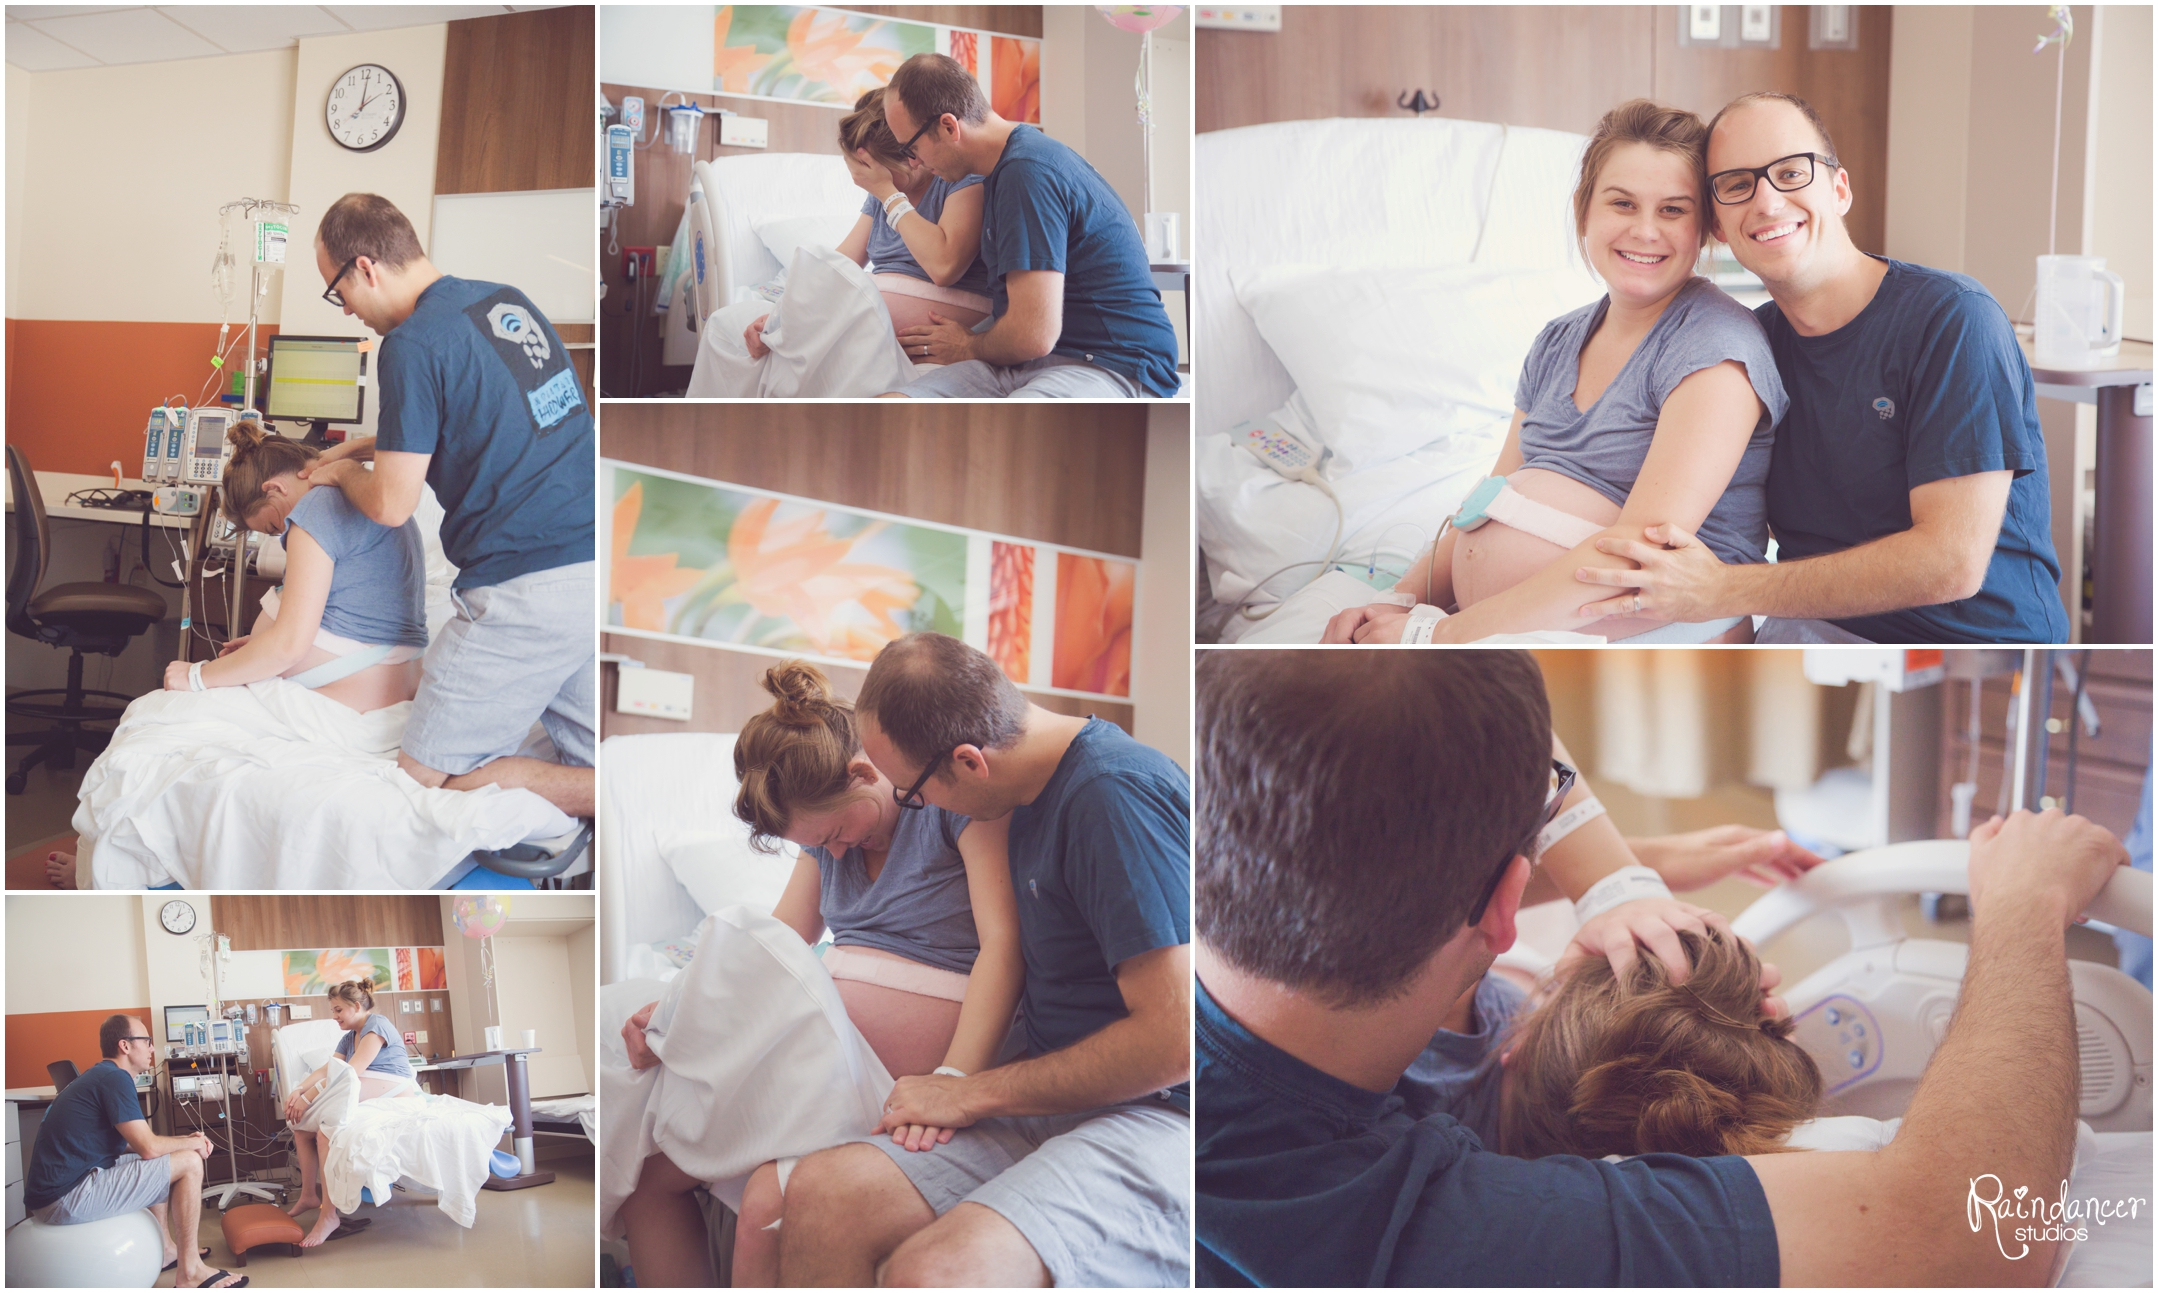 Indianapolis birth photography, Indy birth photographer, Indianapolis birth photographer, birth photography